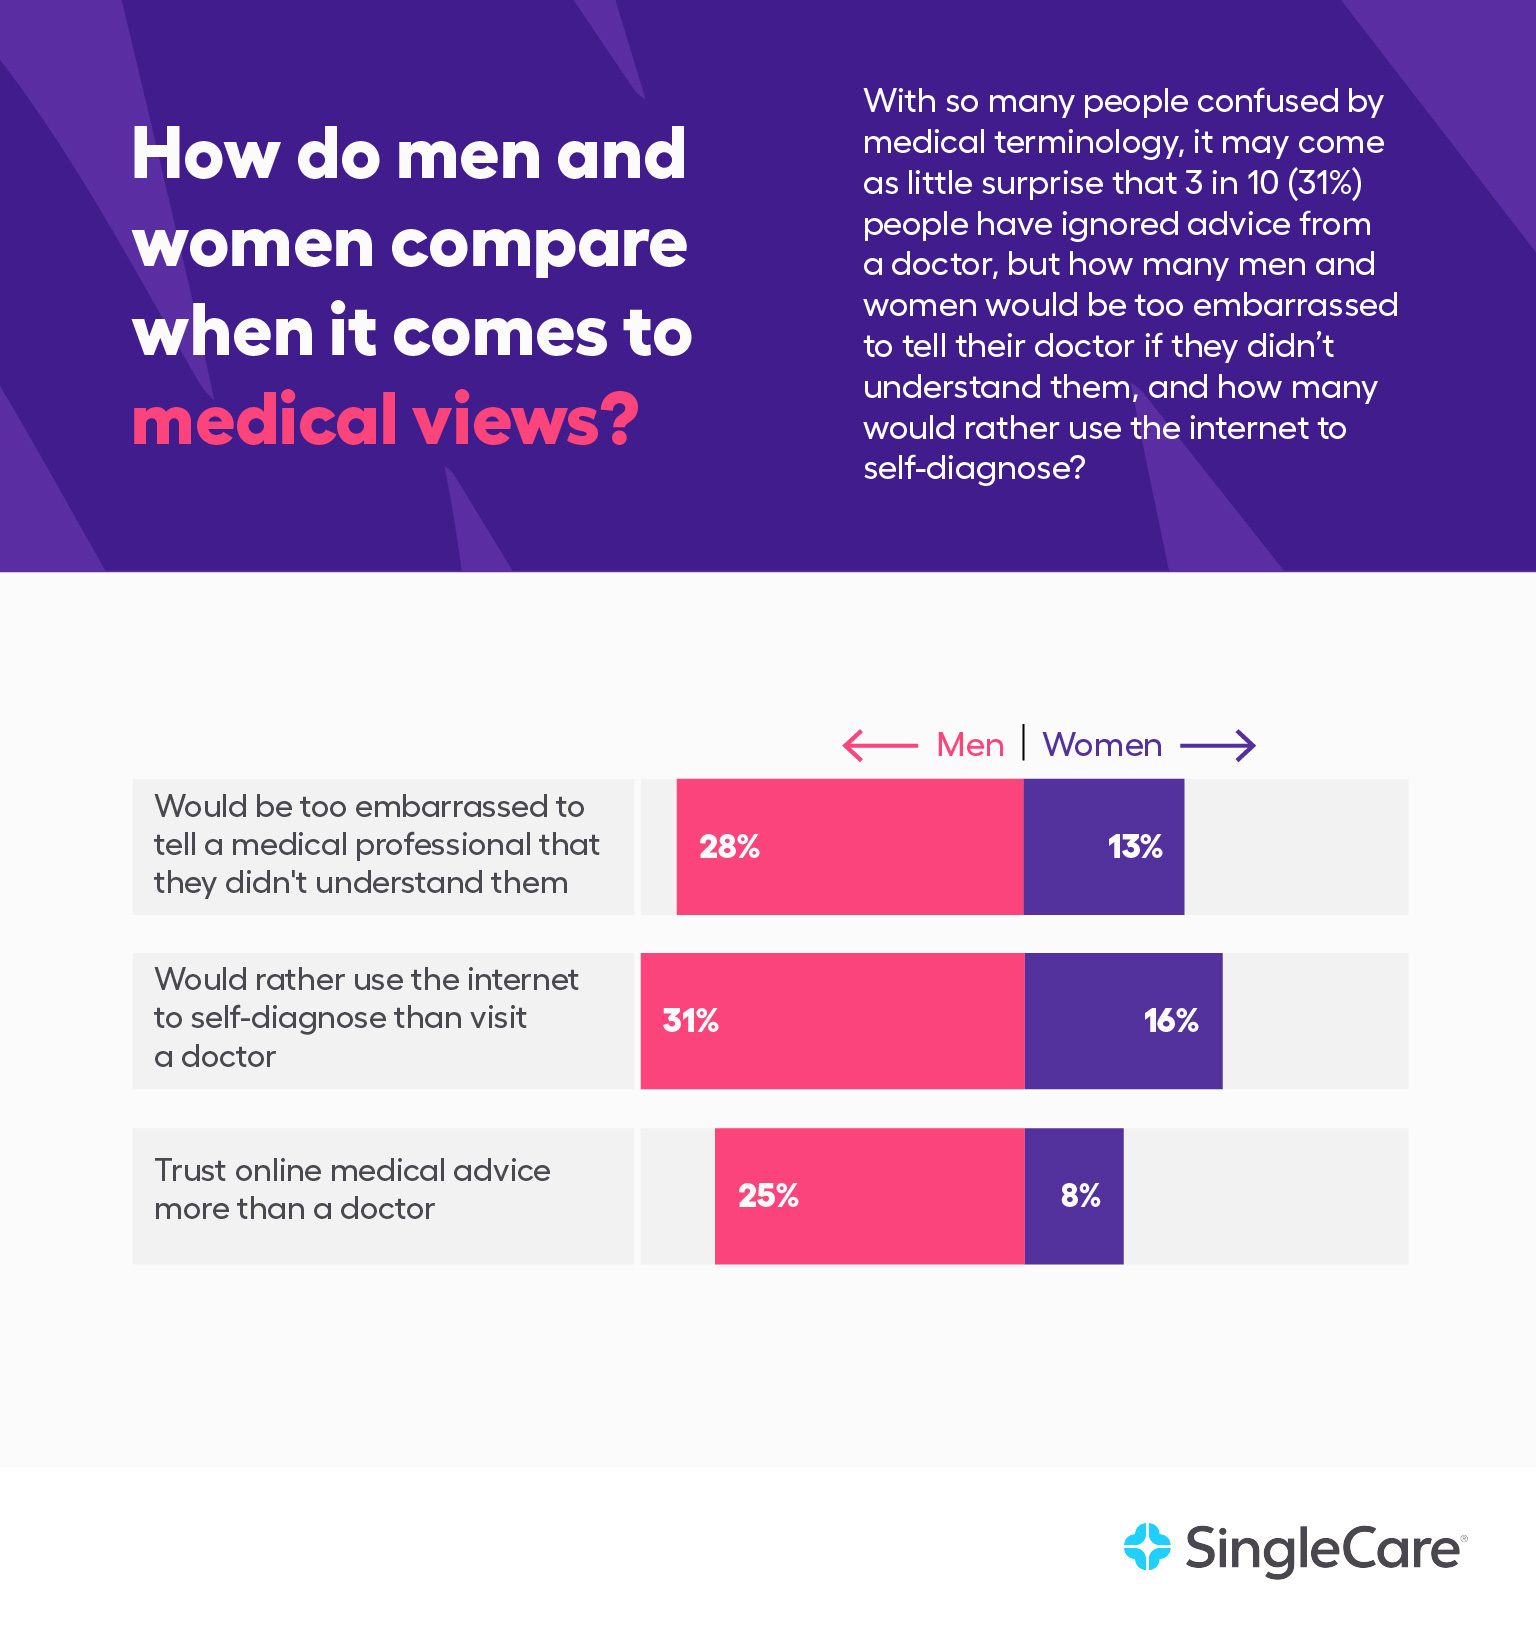 How do men and women compare when it comes to medical views?